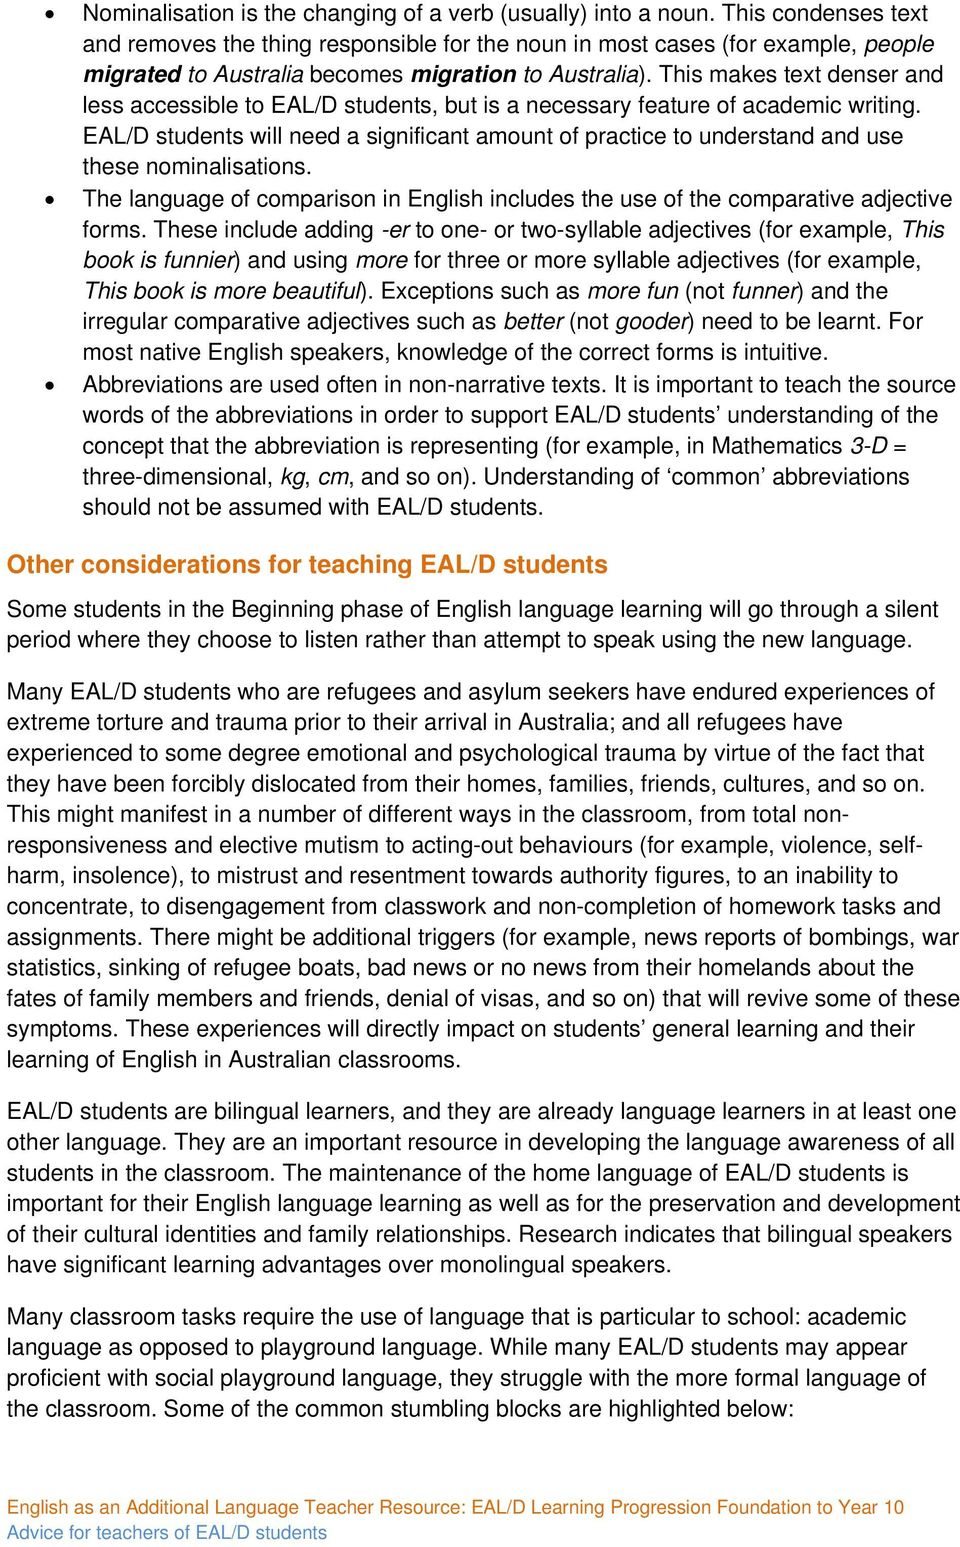 This makes text denser and less accessible to EAL/D students, but is a necessary feature of academic writing.